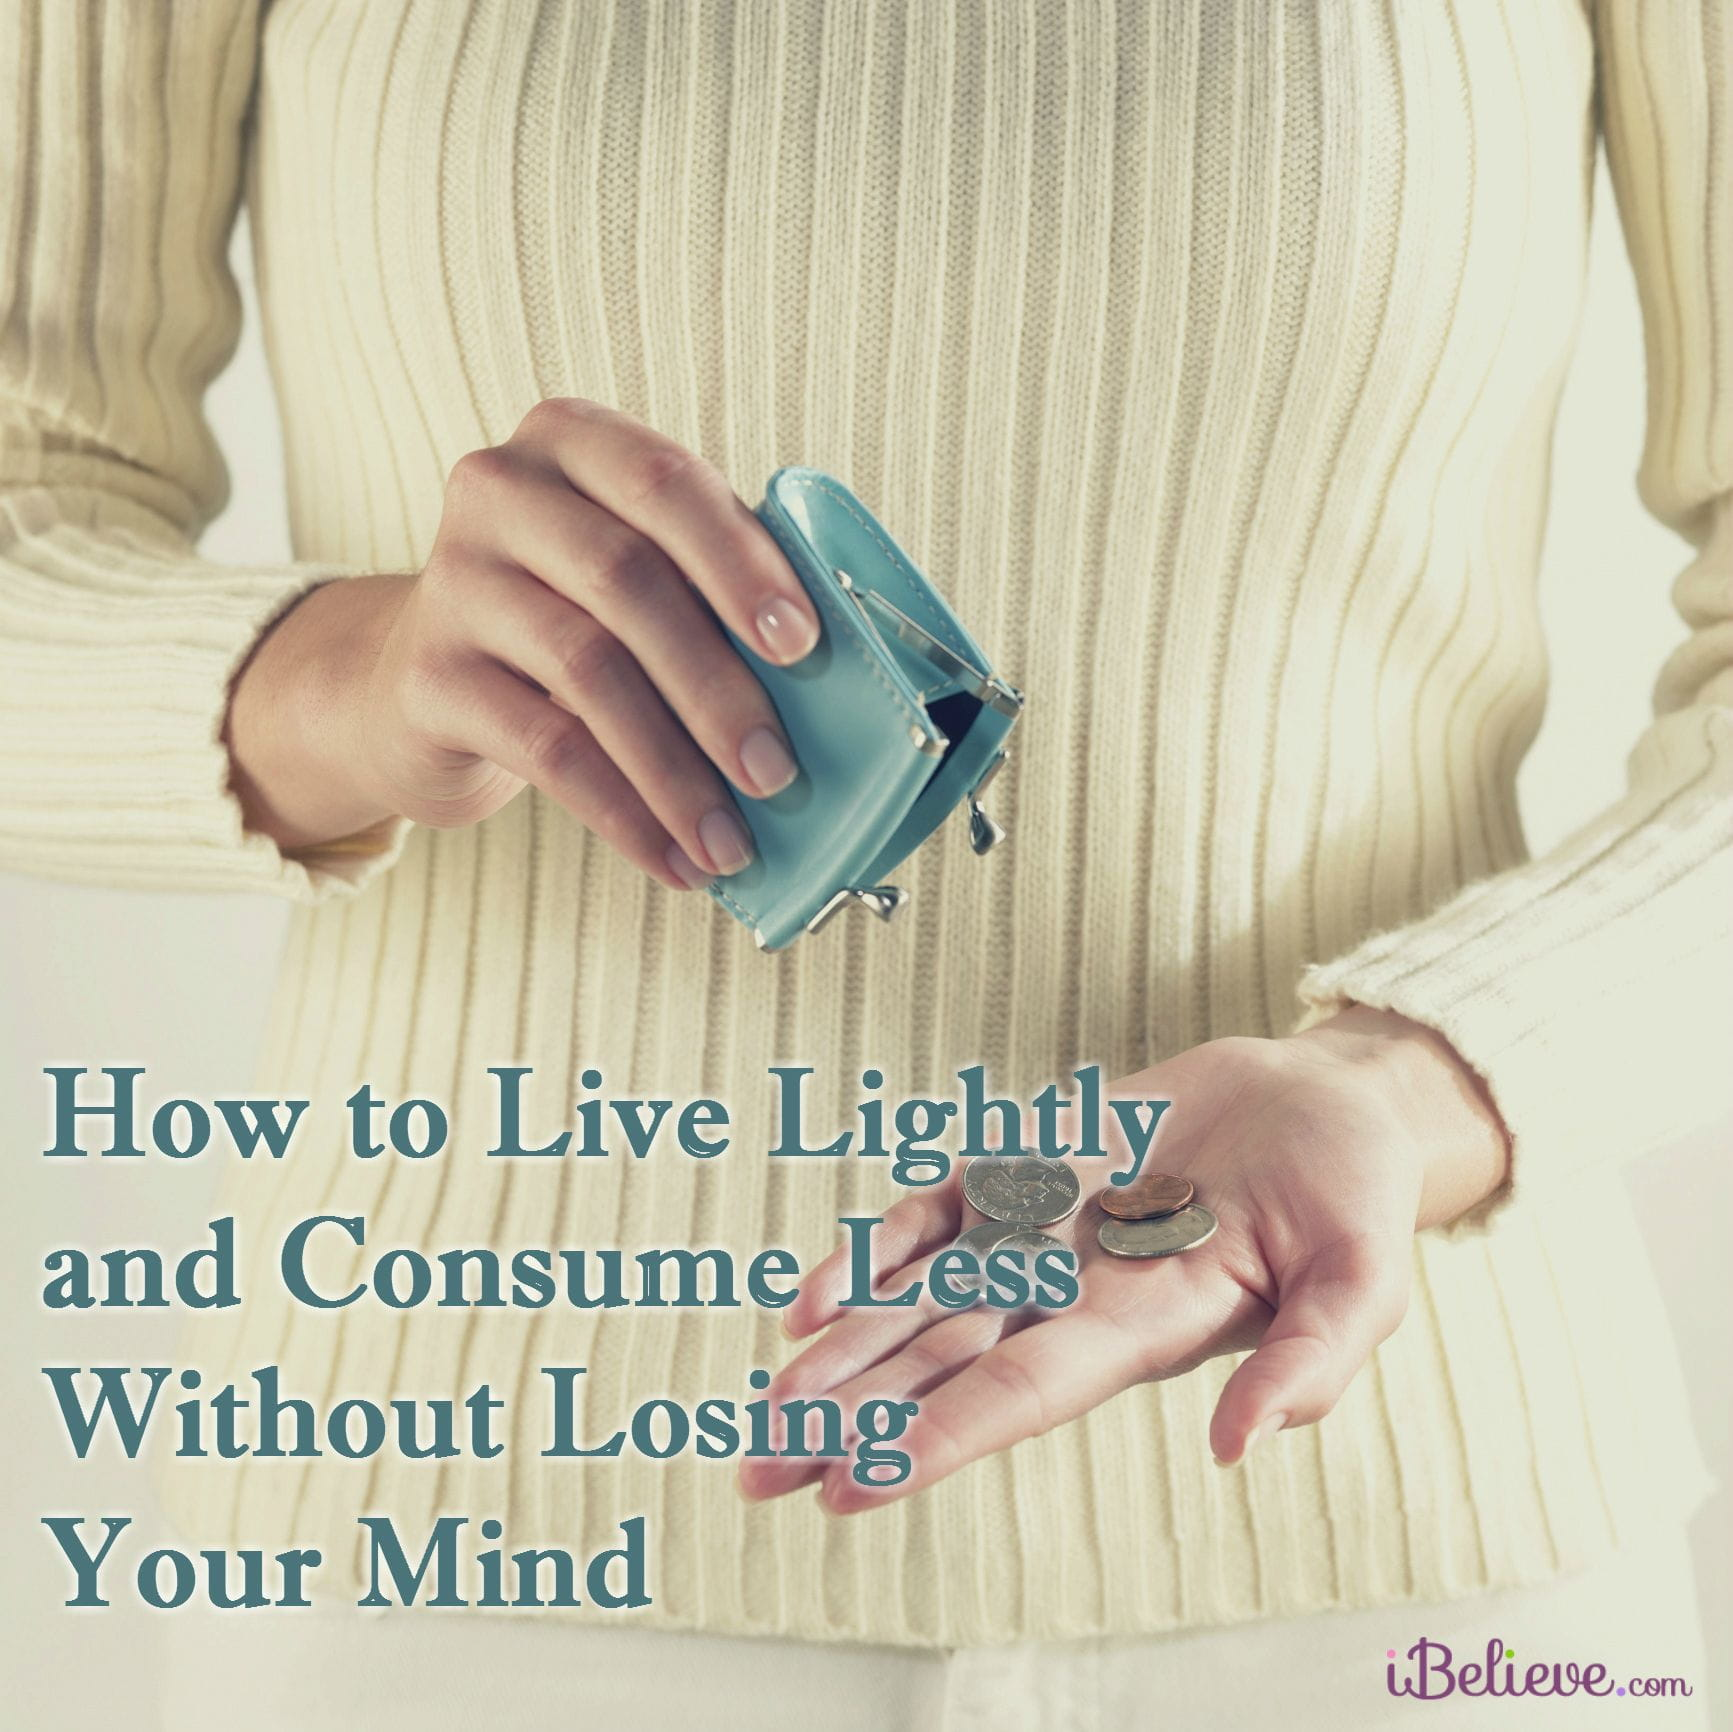 How to Live Light and Consume Less without Losing Your Mind